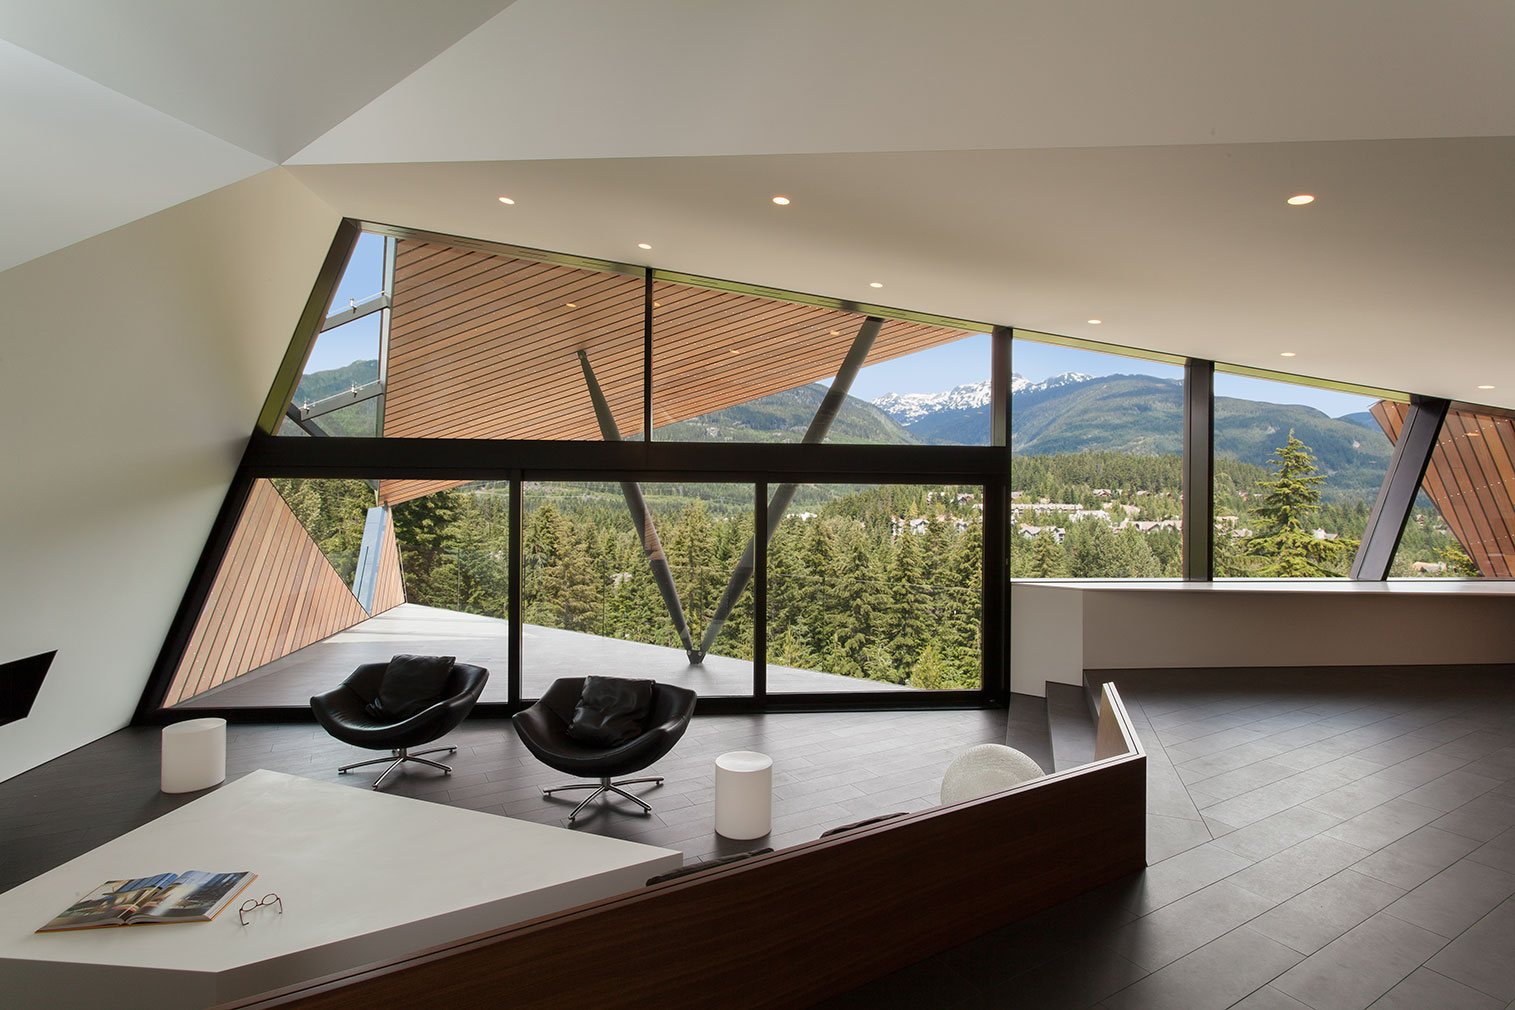 Views modern chalet architecture in canada best of interior design - Chalet Design Hadaway House By Patkau Architects